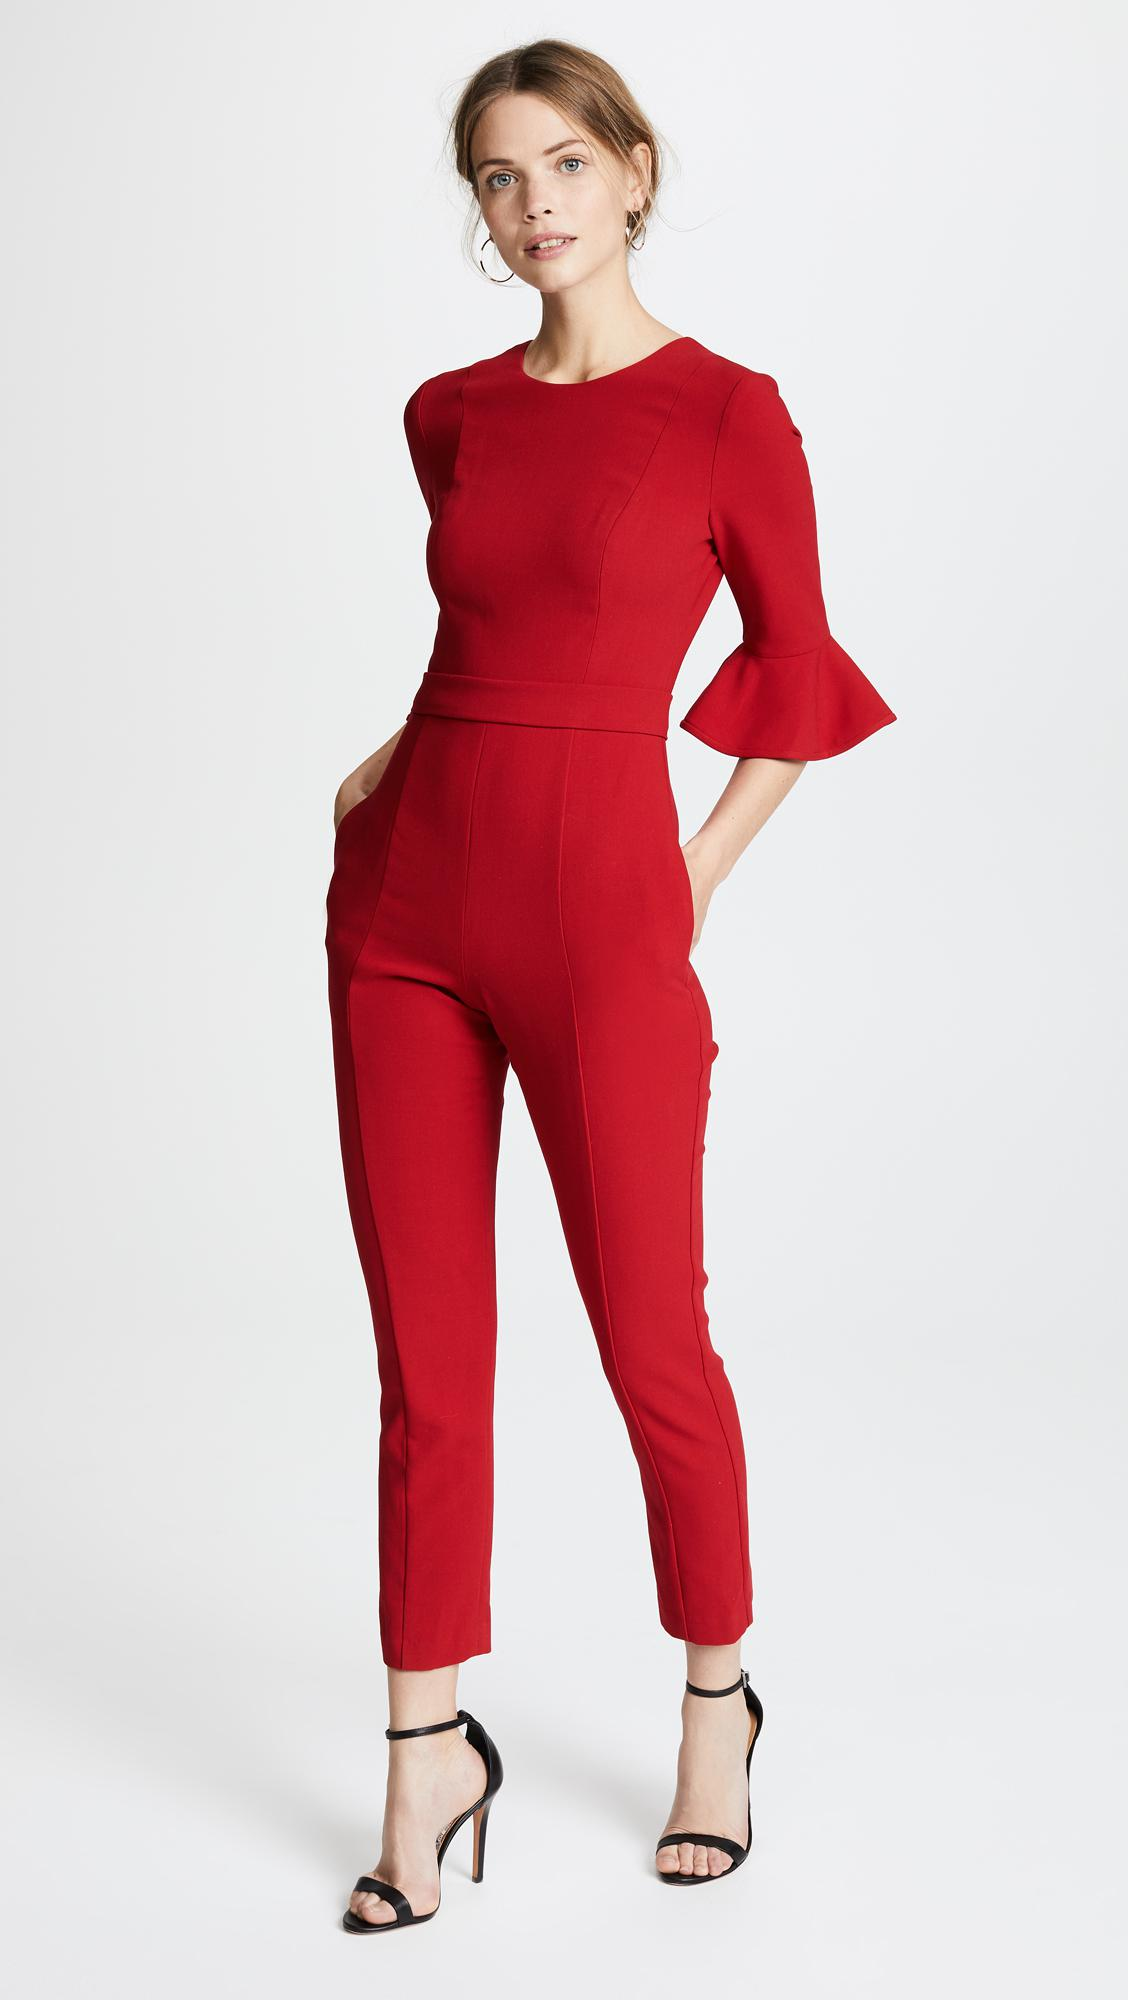 4930a1f65ed Lyst - Black Halo Brooklyn Cropped Jumpsuit in Red - Save 25%